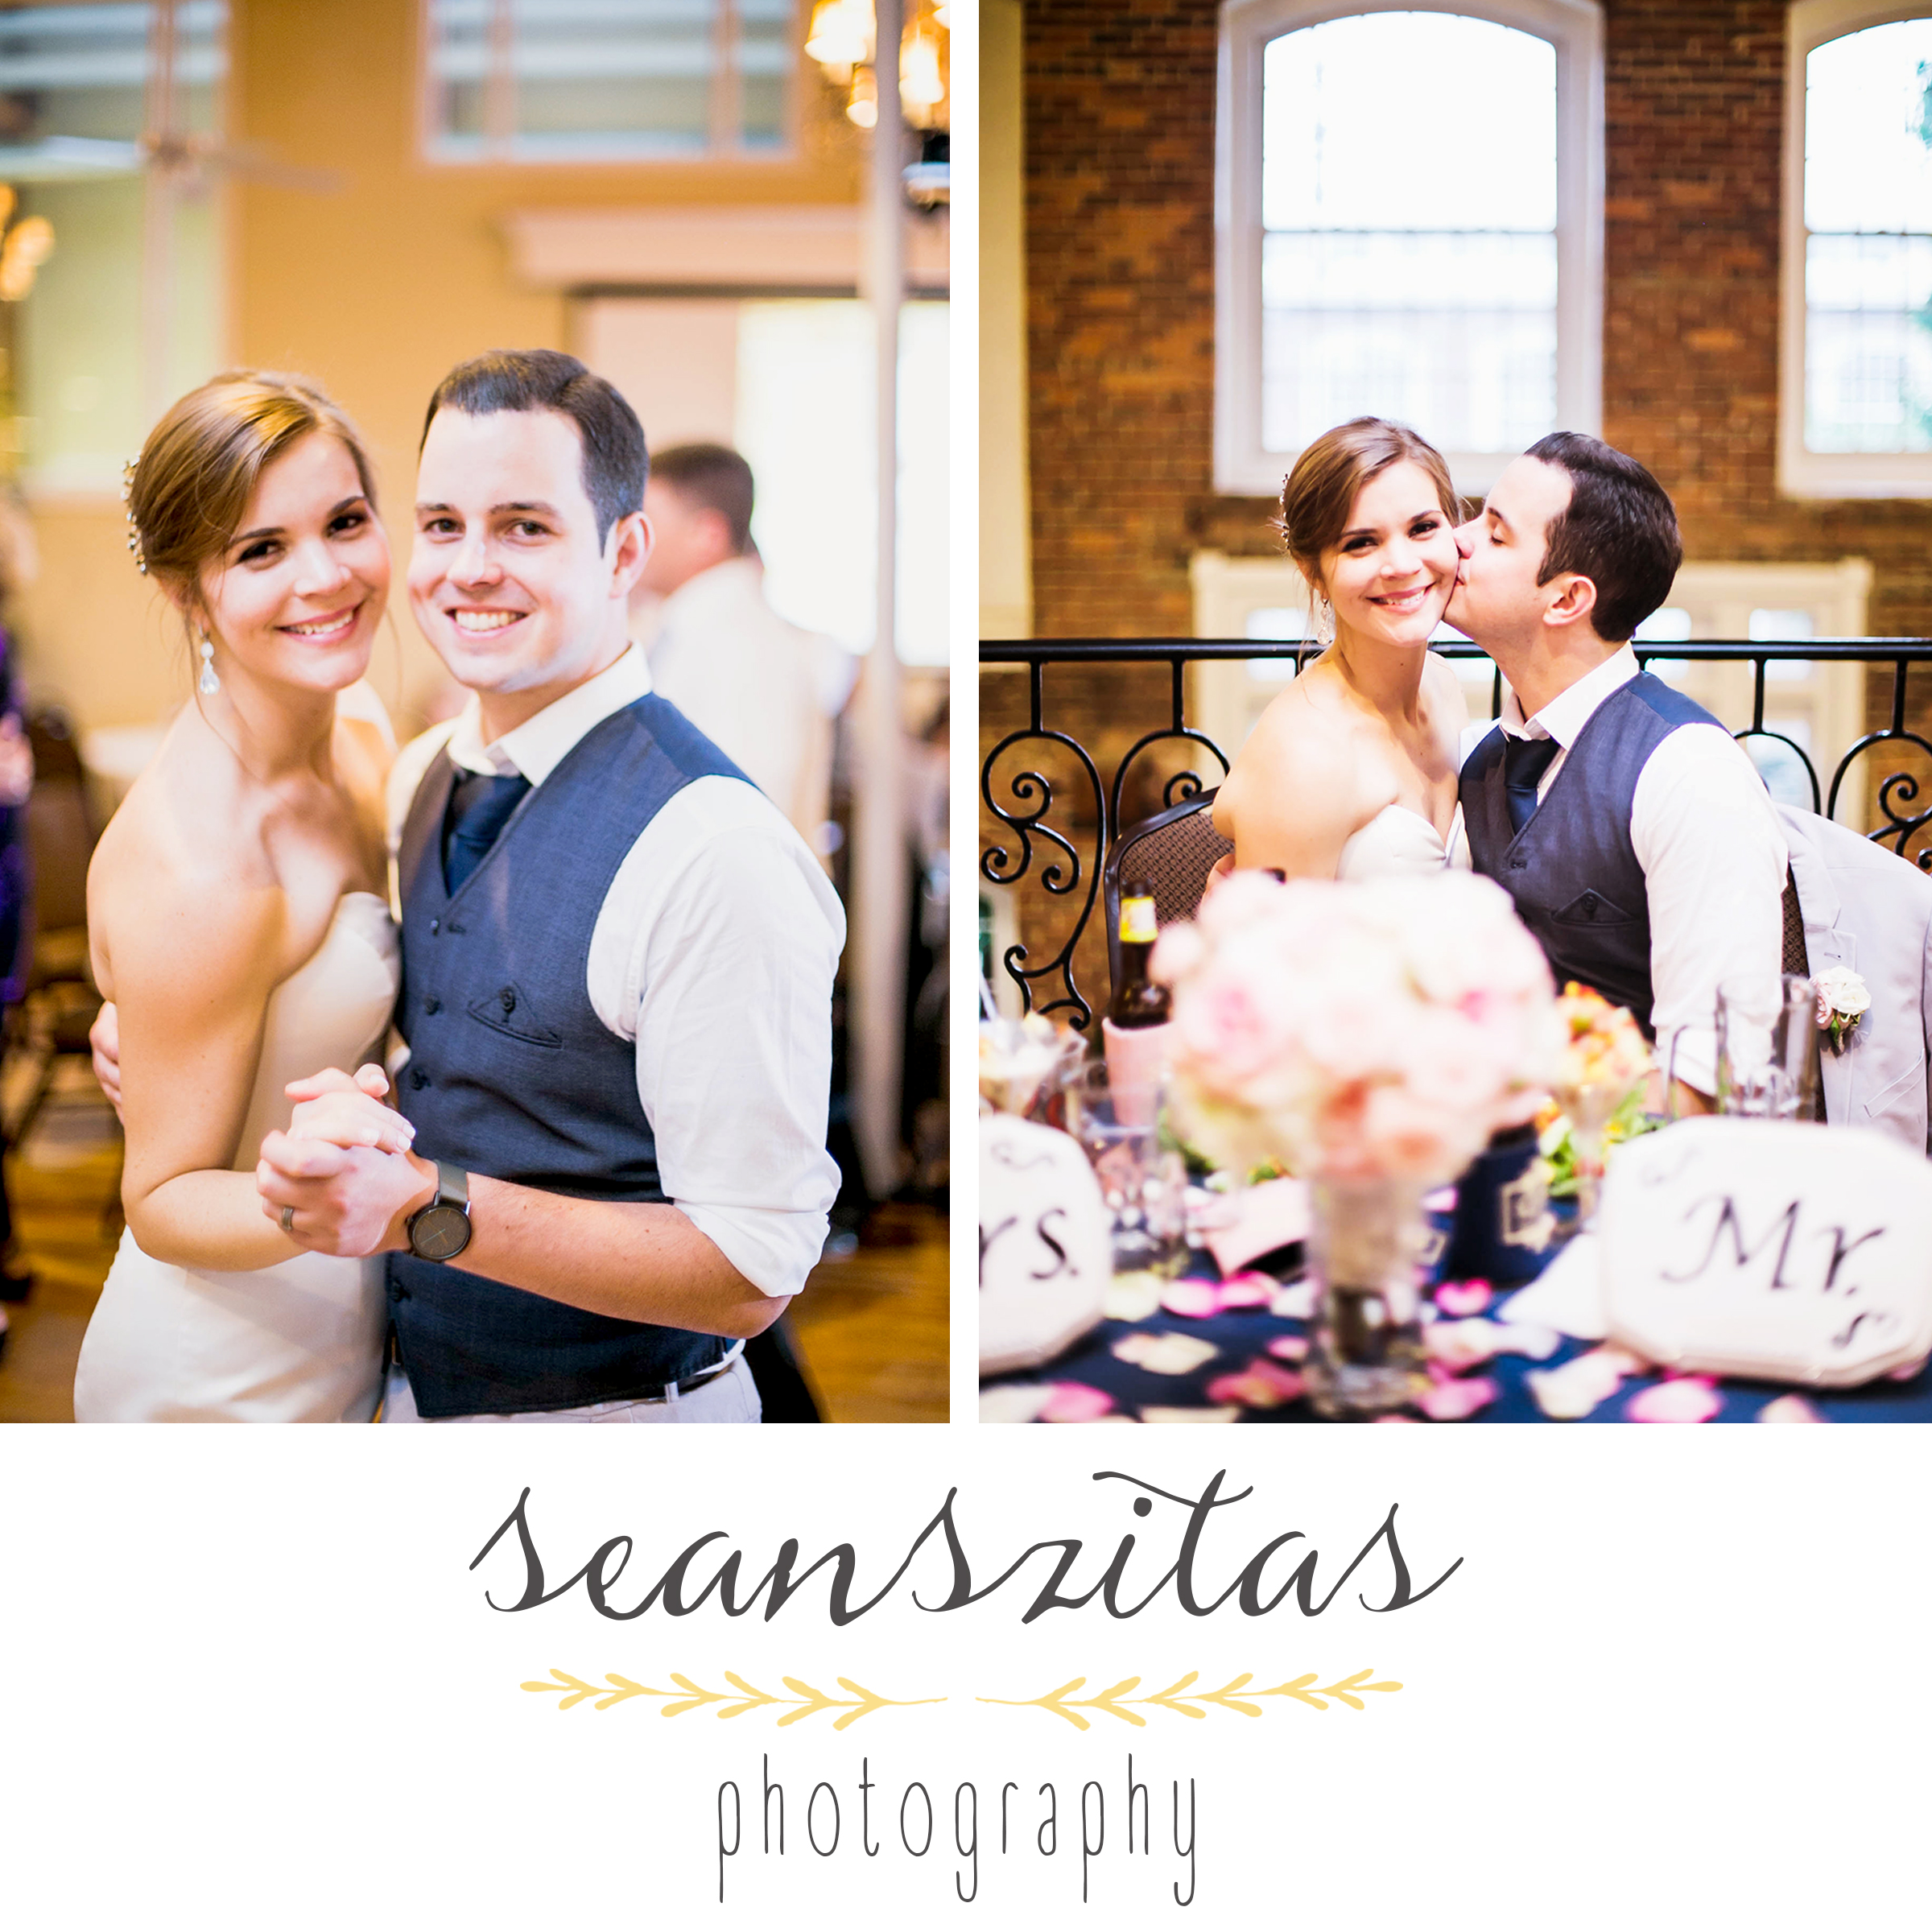 wedding sean szitas photography greensboro durham